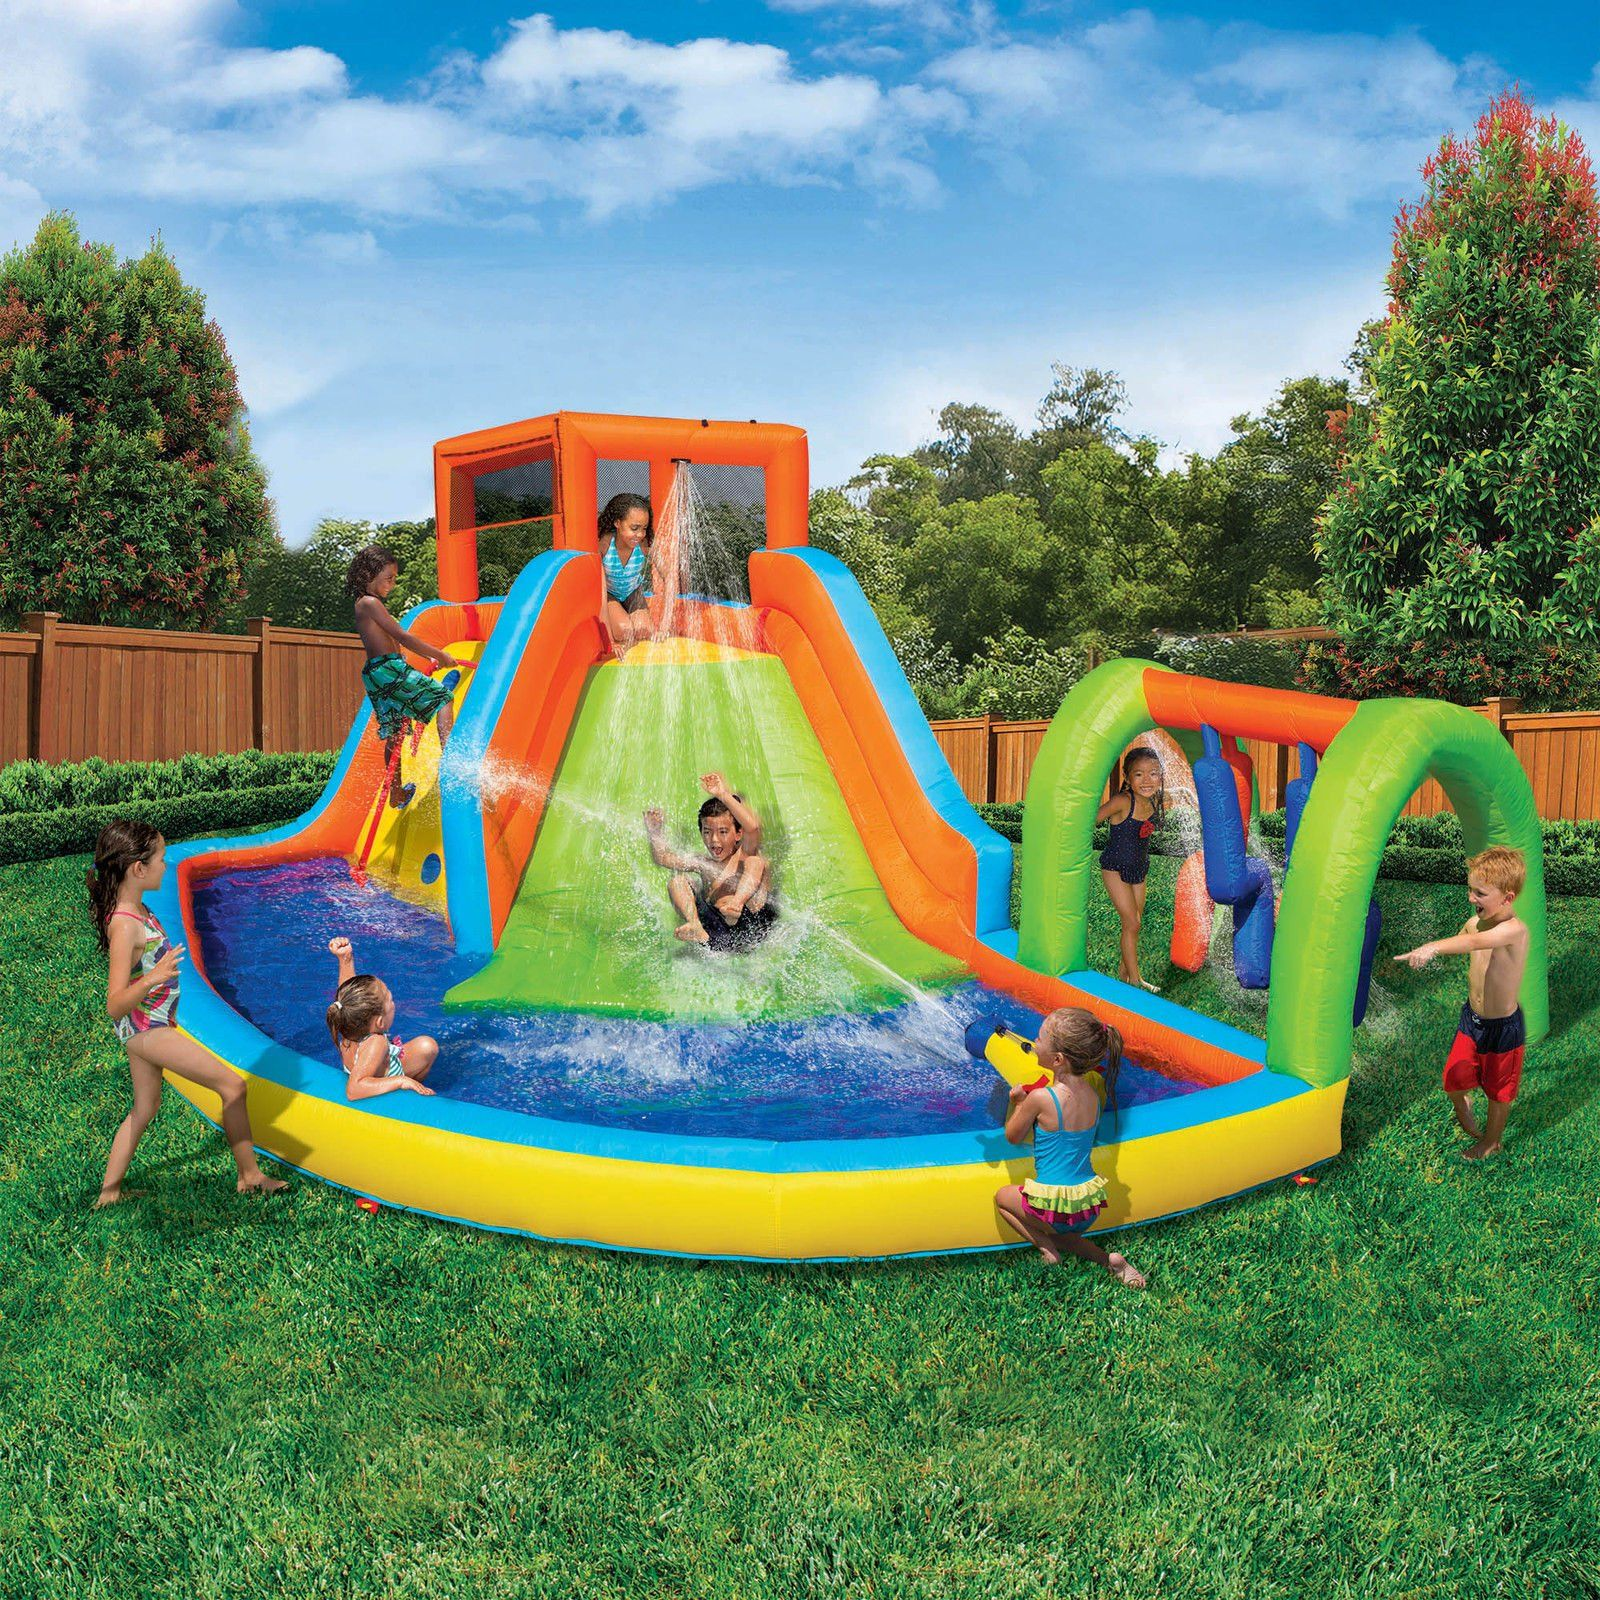 Sporting Goods Outdoor Holiday Inflatables Summit Pool Water Park And Slide Adventure Splash Inflation Toys For Ki Inflatable Water Park Splash Pool Water Park